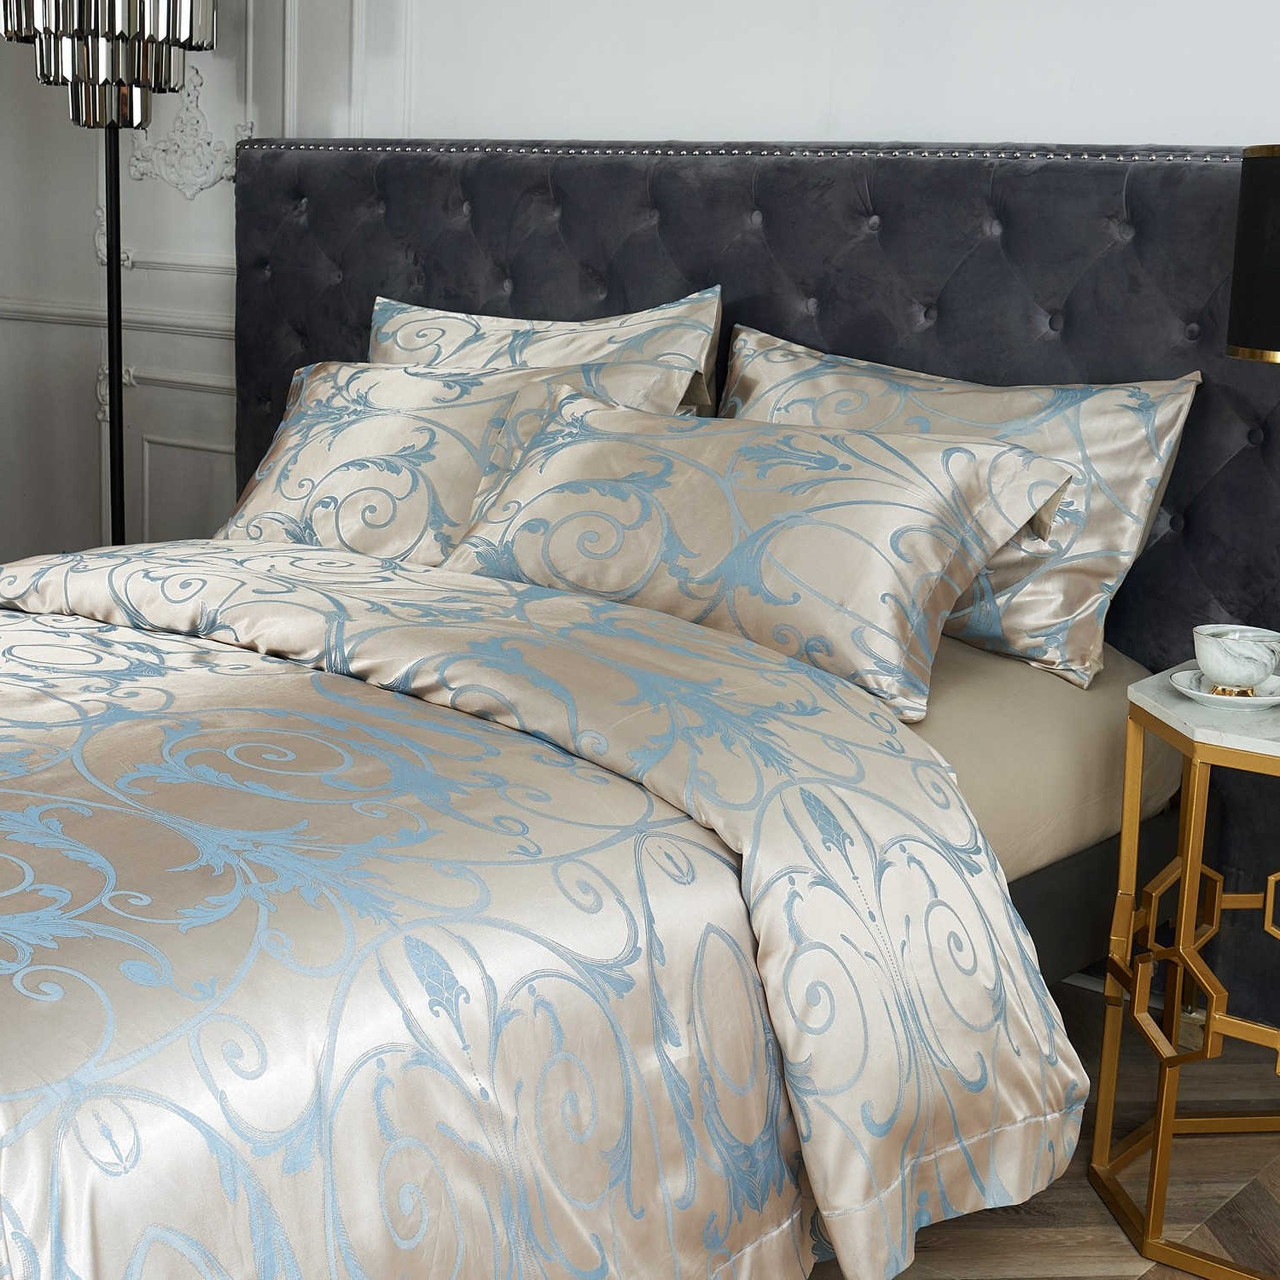 DM800Q Jacquard Queen Size Duvet Cover